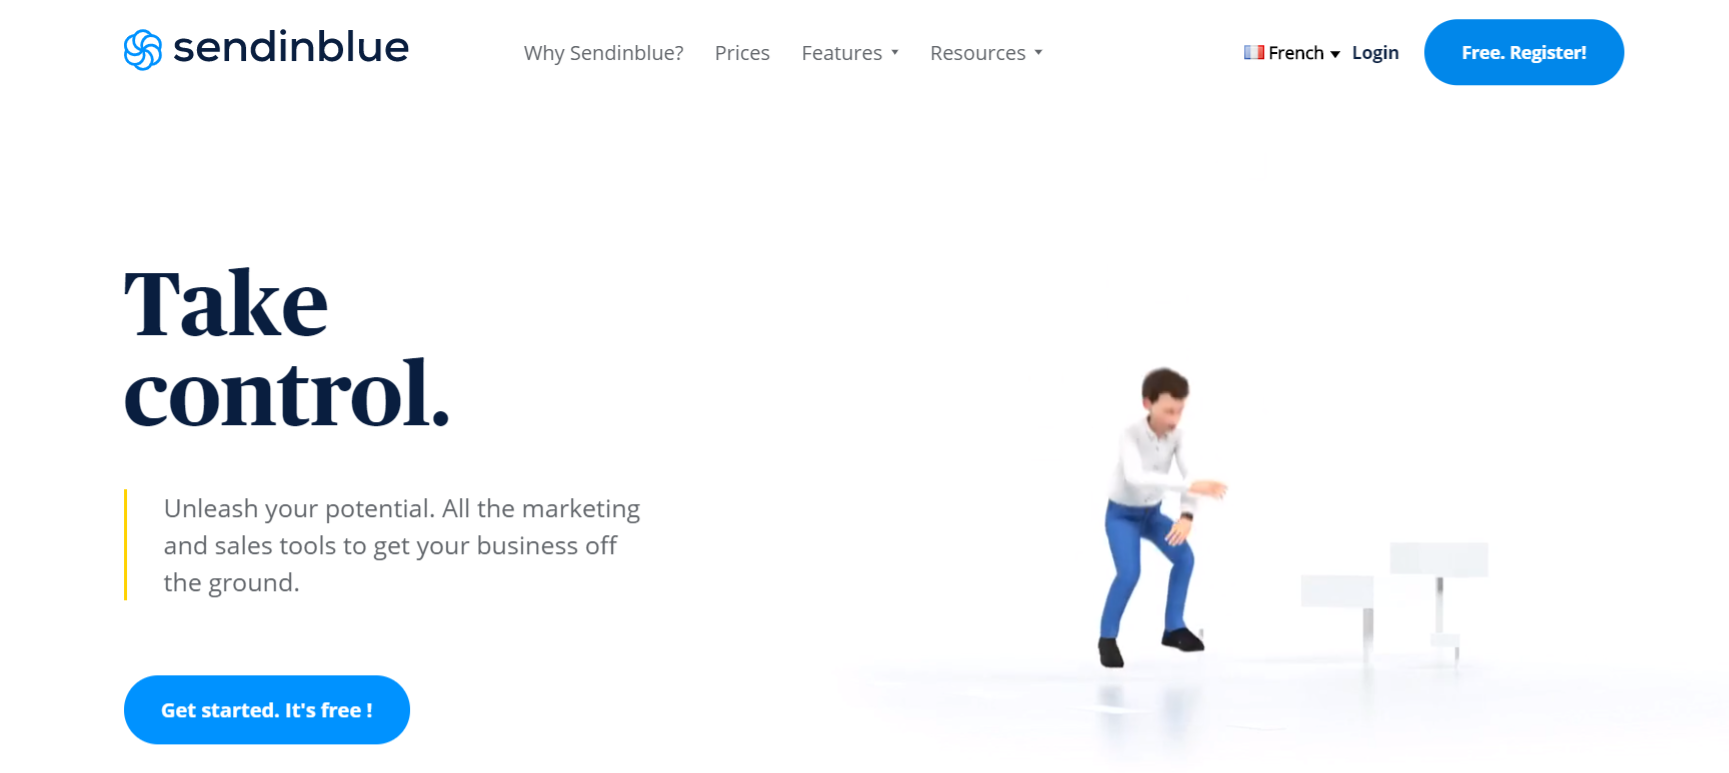 Sendinblue: Email marketing software